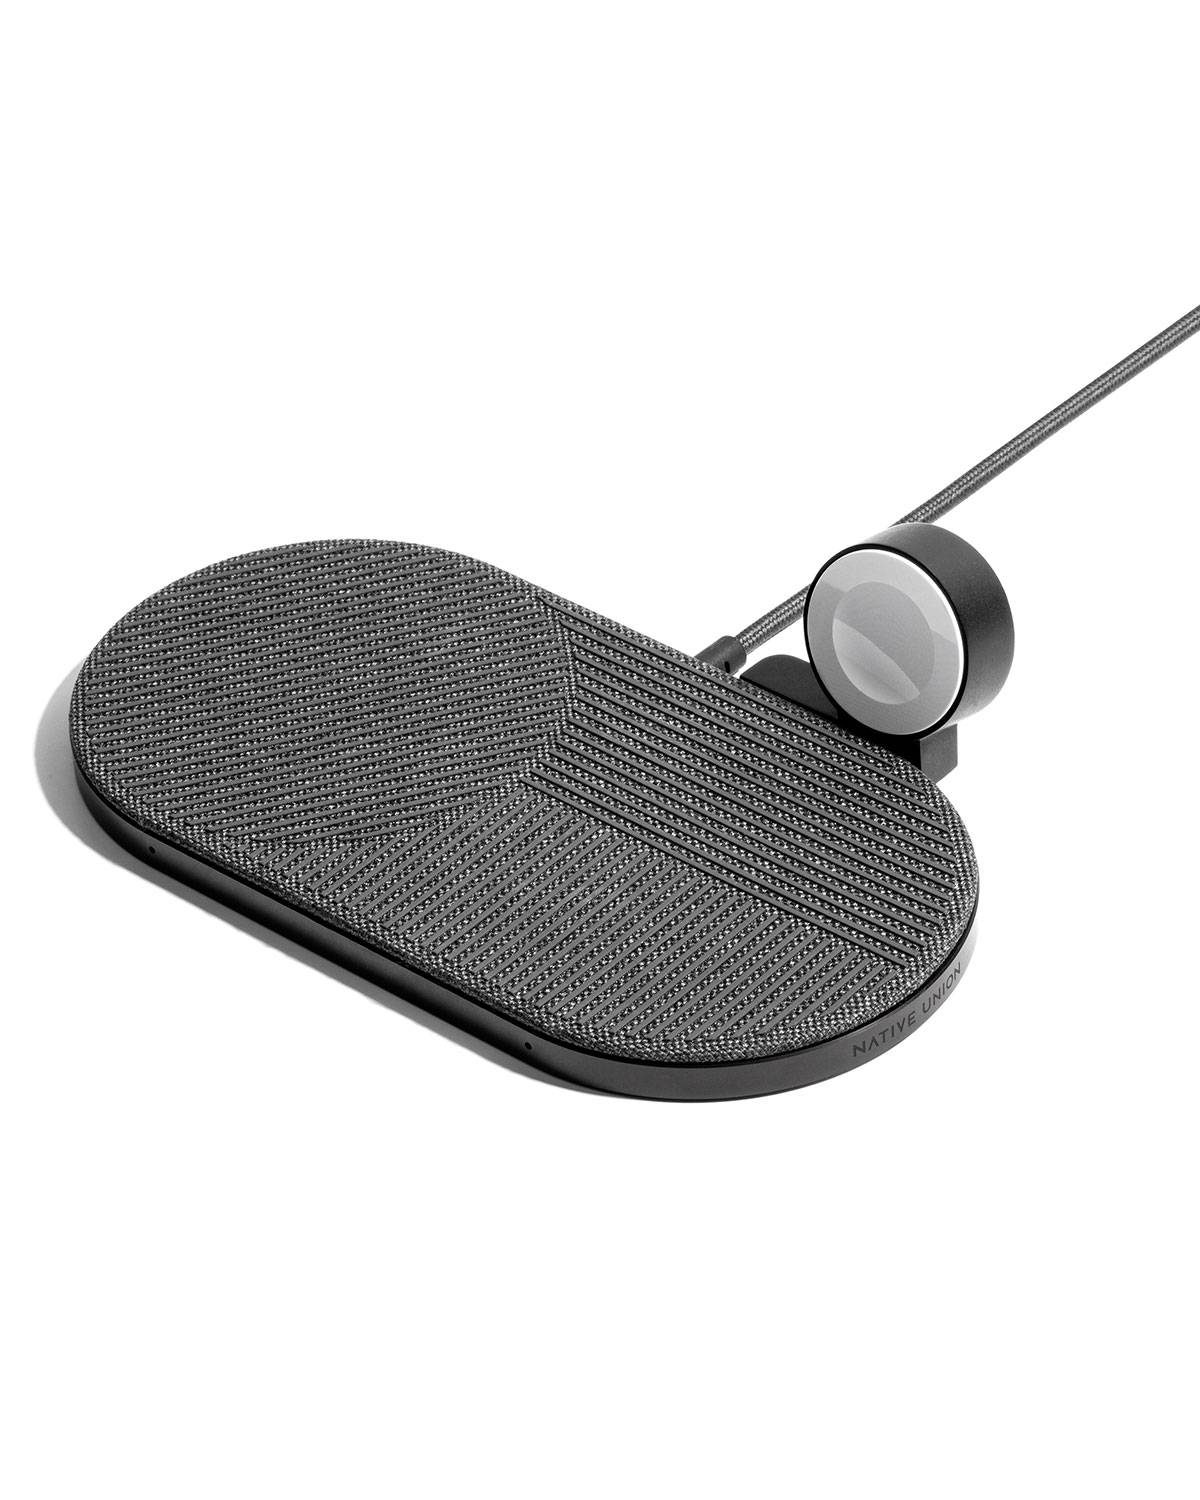 Drop XL Wireless Charger - Watch Edition